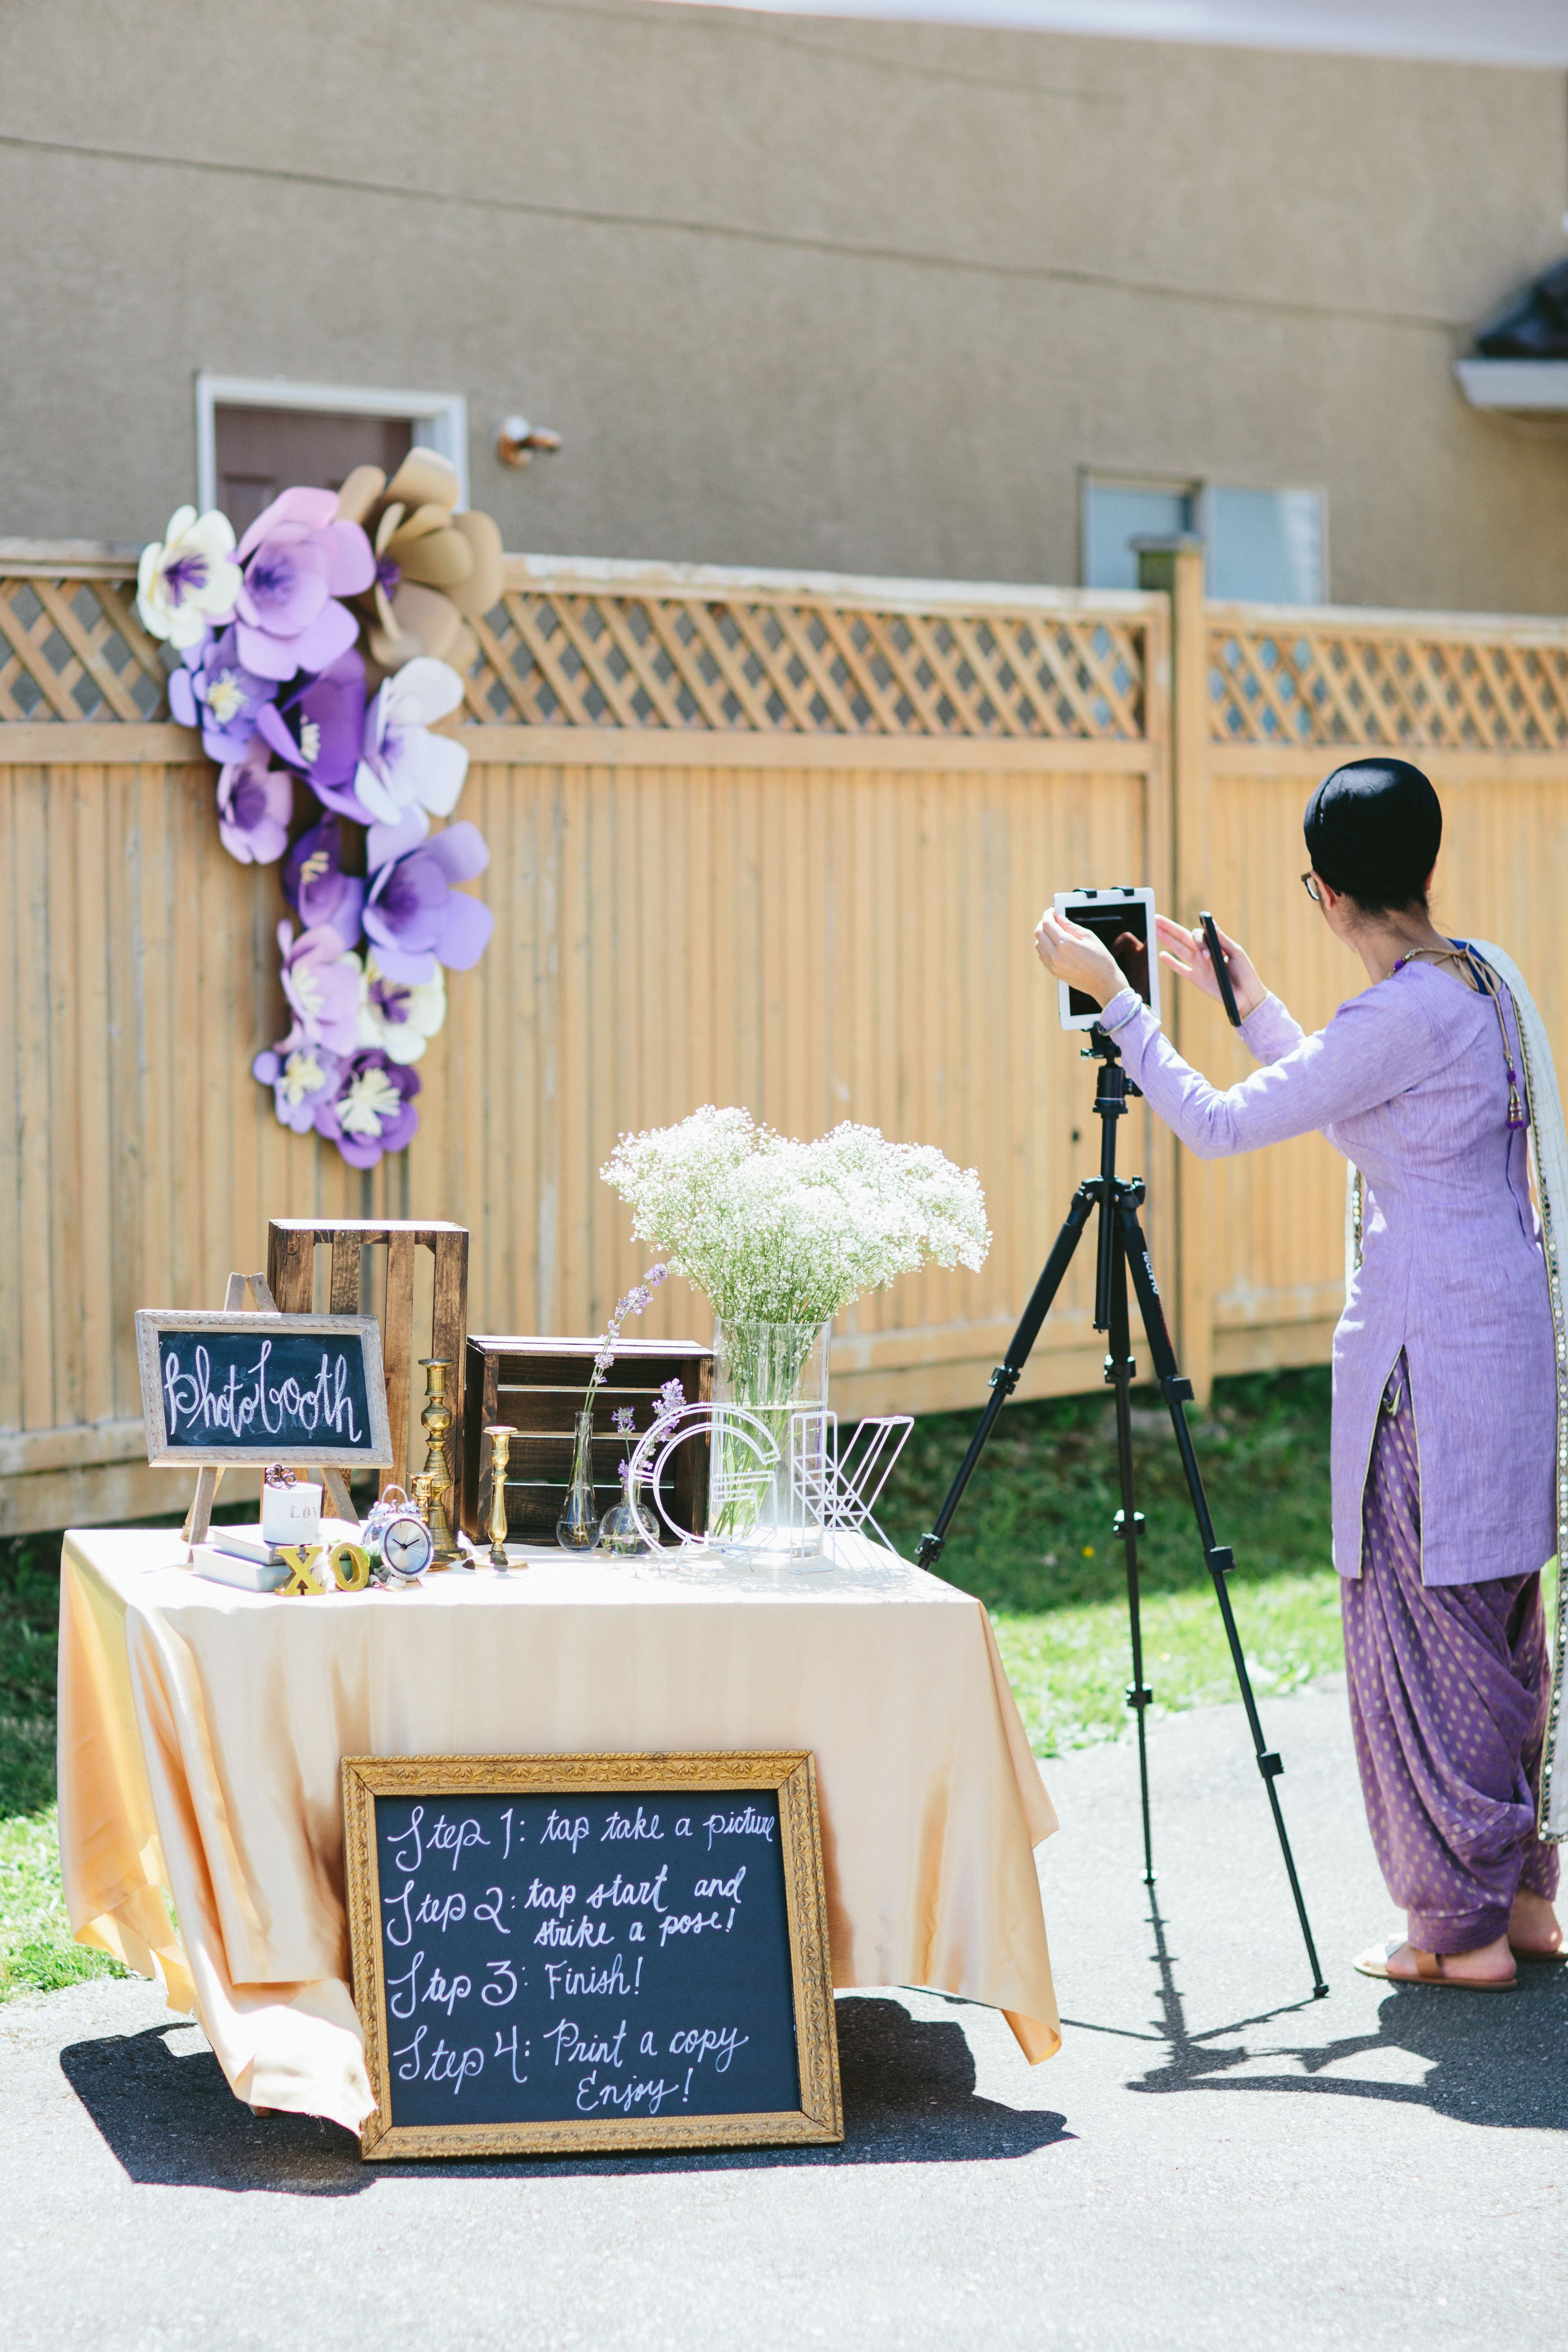 Quick wedding decorations  How To Set Up A DIY Wedding Photo Booth Quick and Easy  Wedding